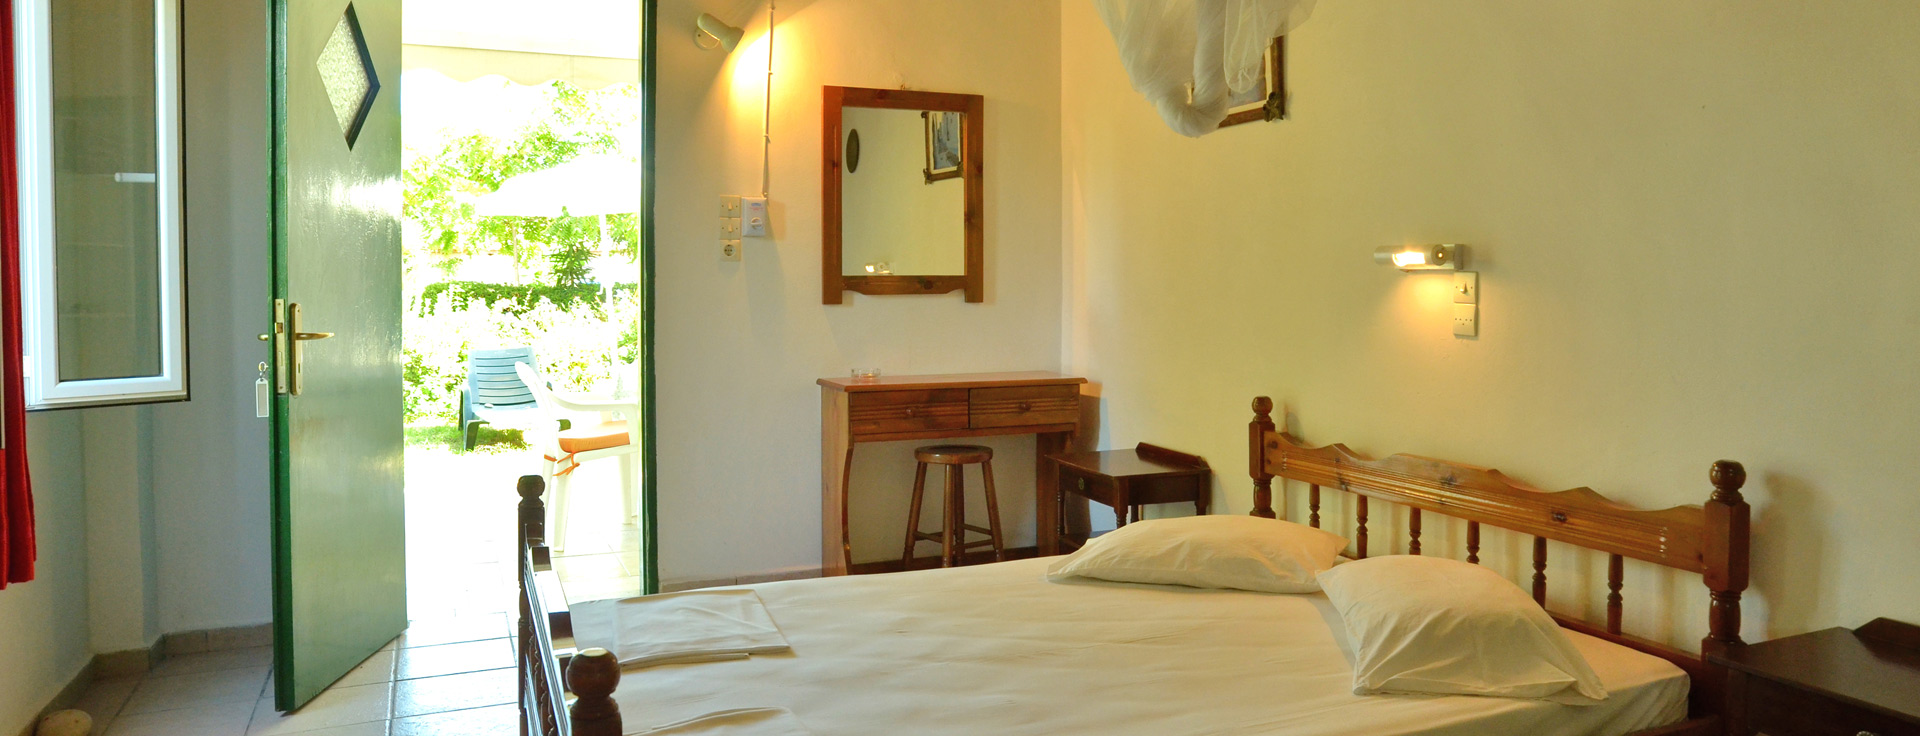 Double bedroom at Lemonia Accommodations.